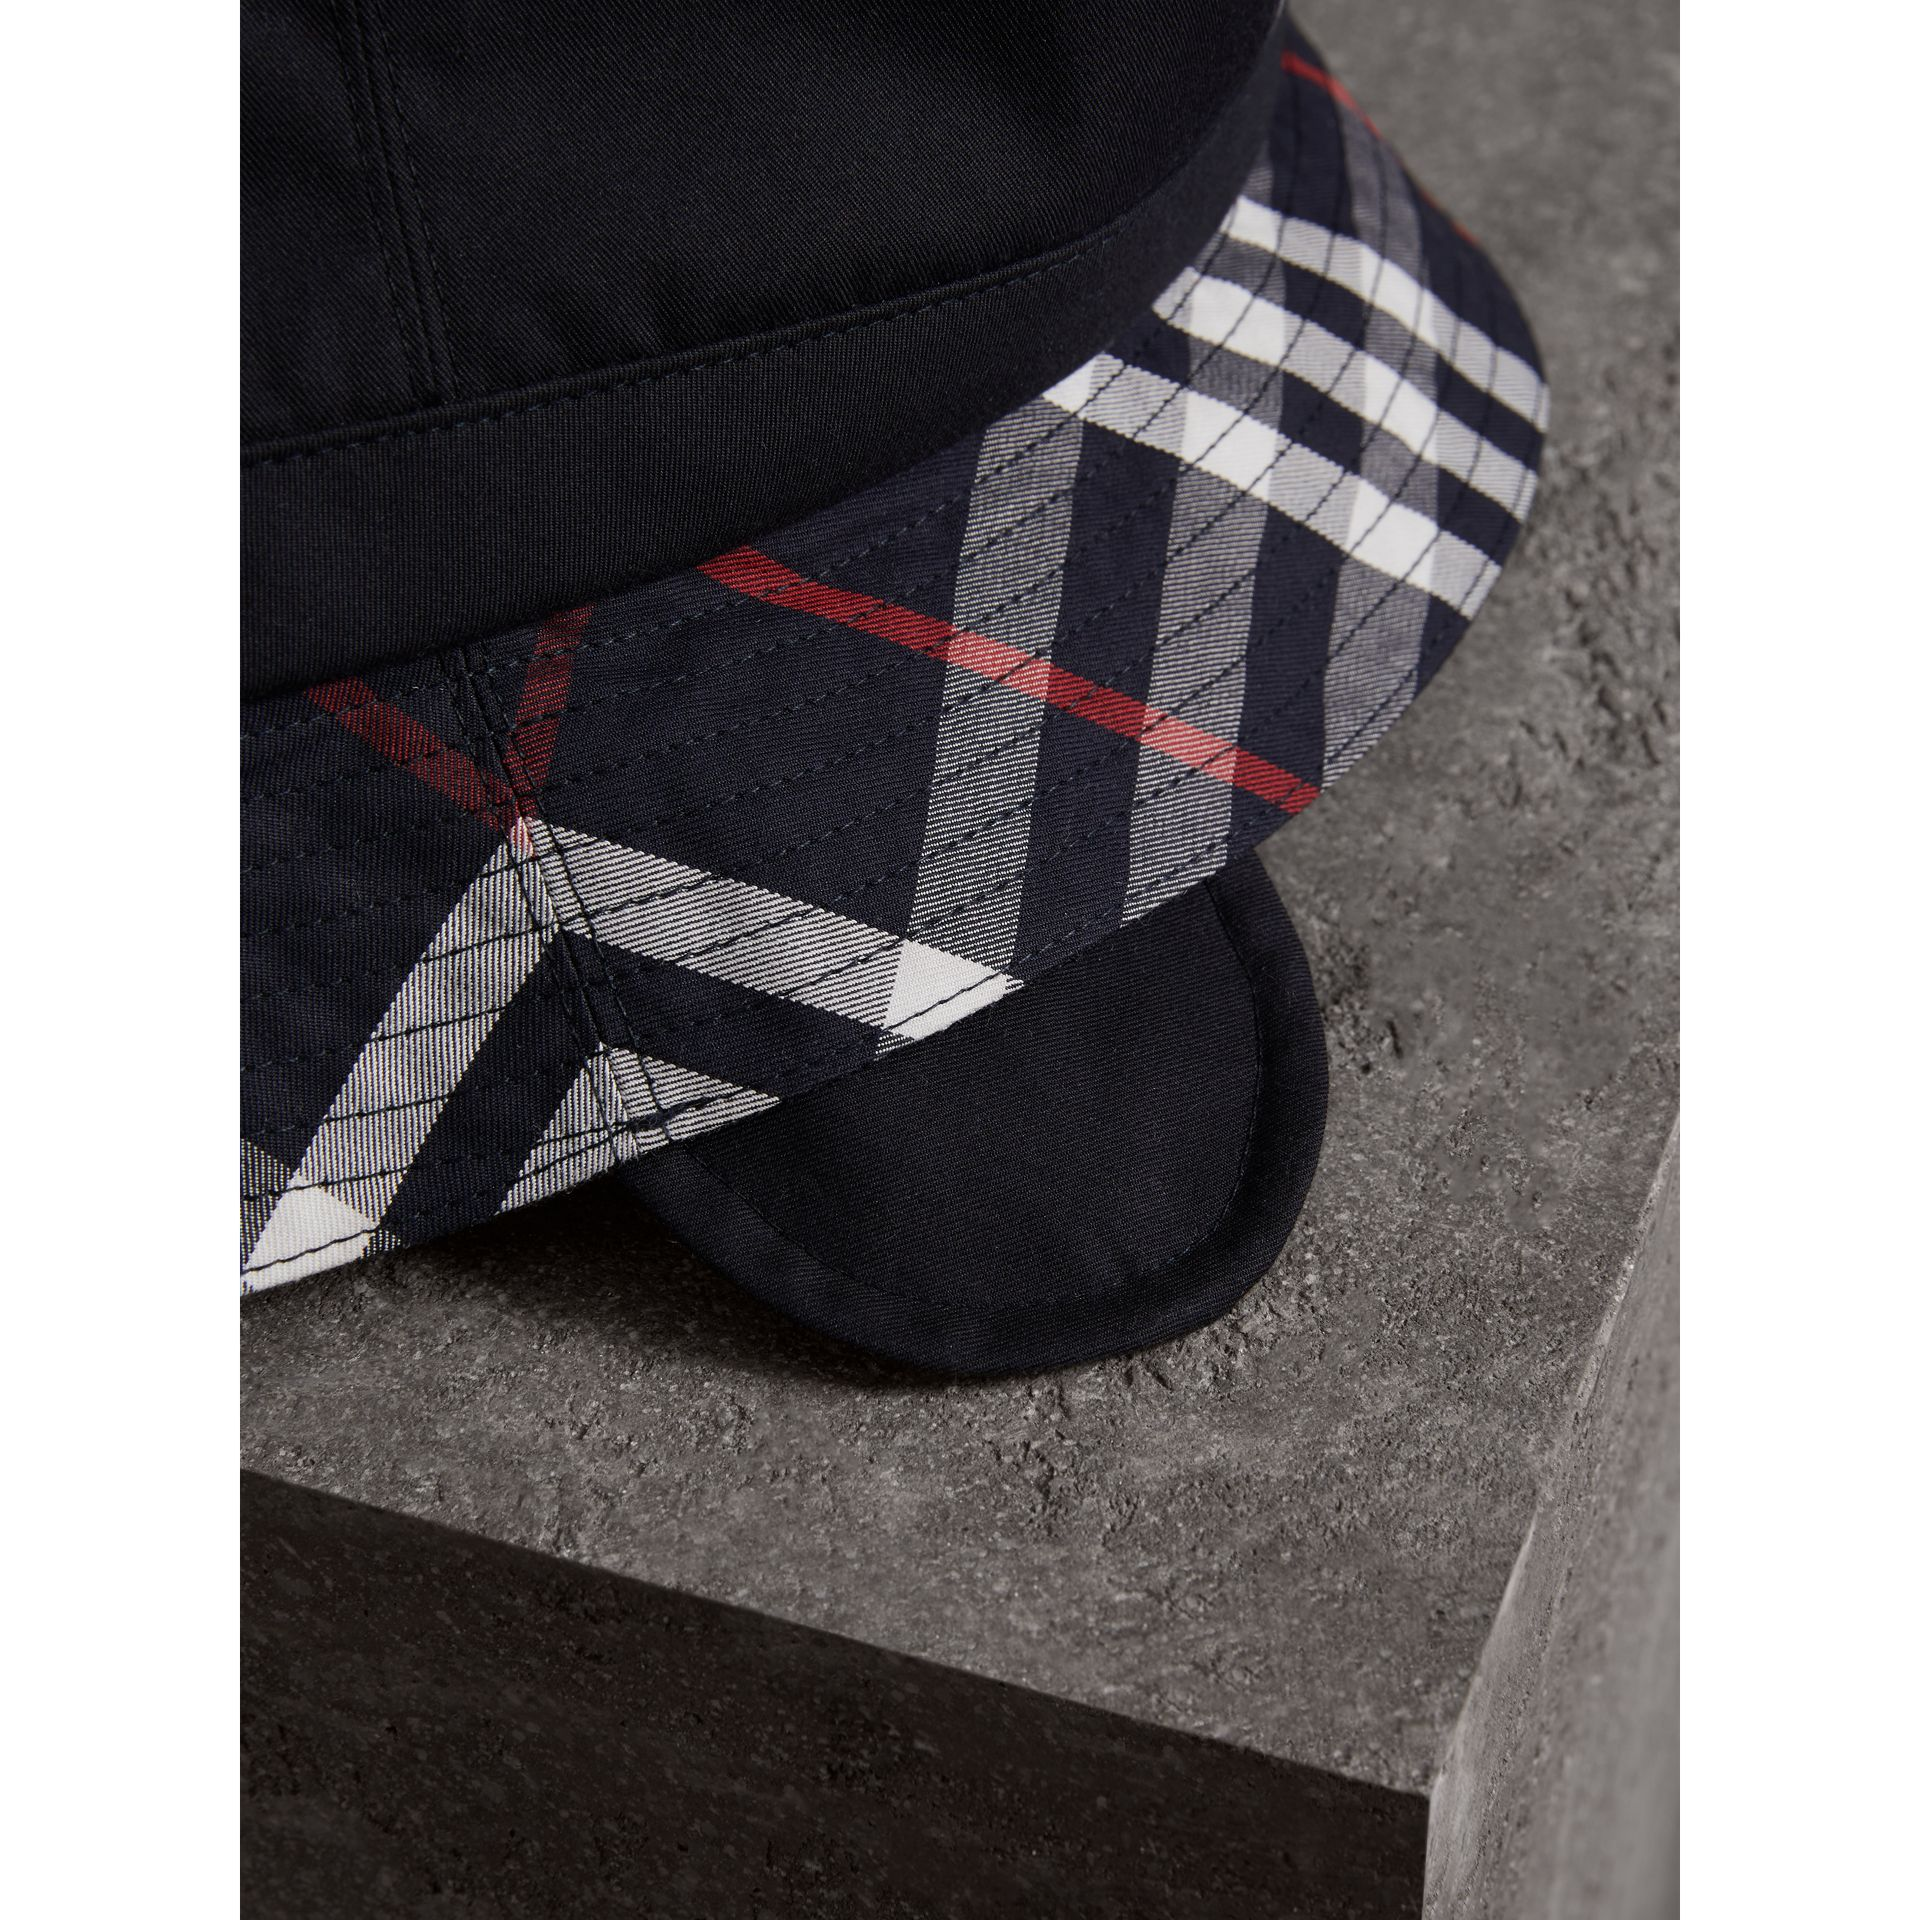 Gosha x Burberry Bucket Hat in Navy | Burberry United Kingdom - gallery image 1